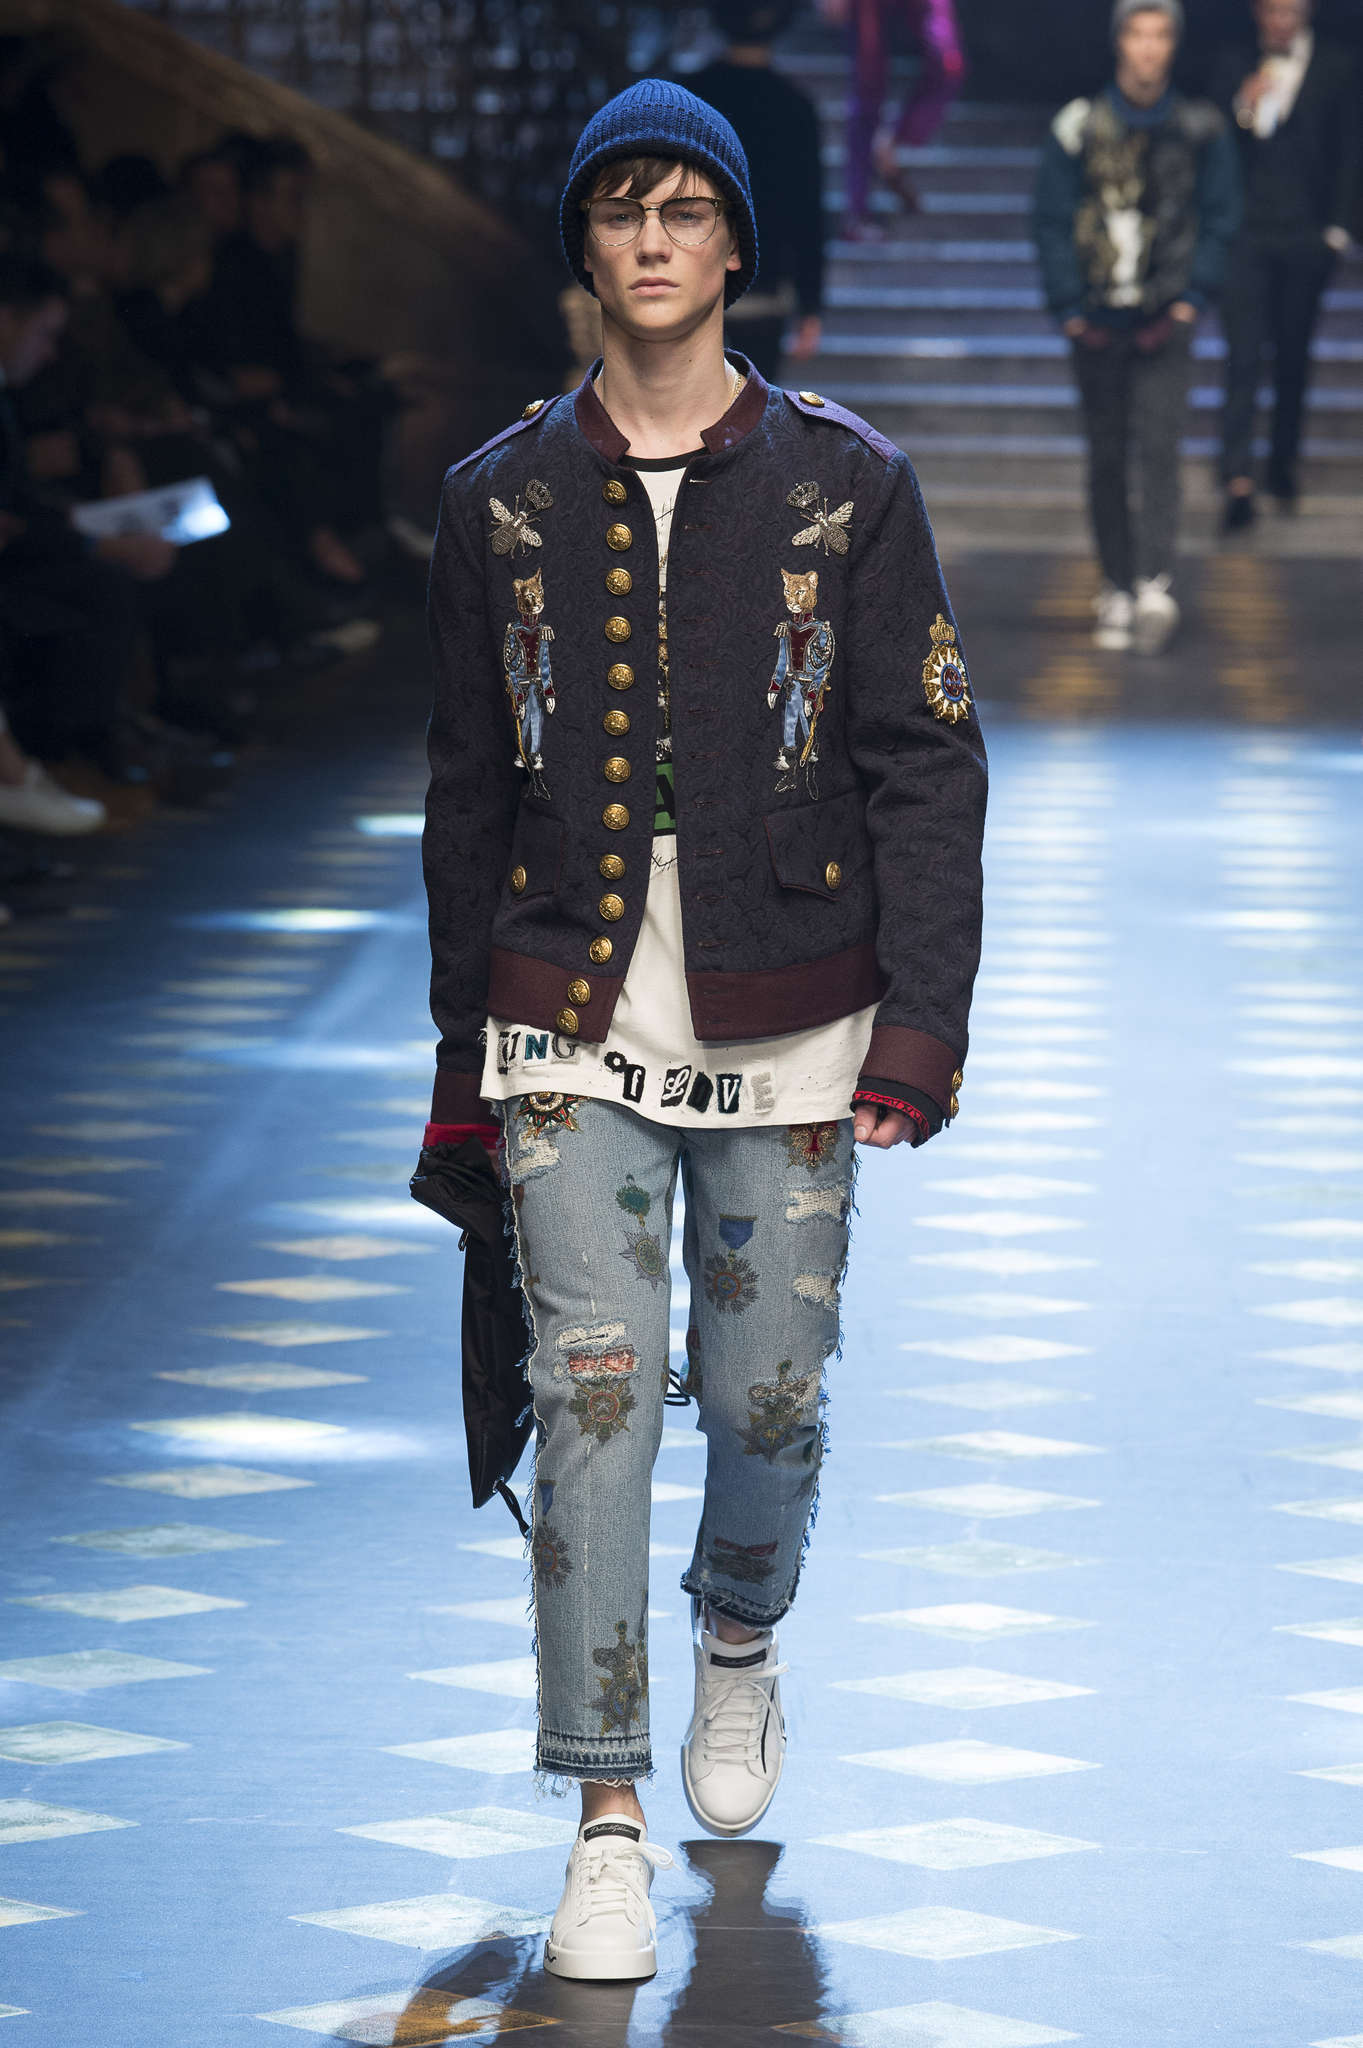 e480def3 dolce-gabbana-fall-winter-2017-milan-menswear-catwalks-023 ...